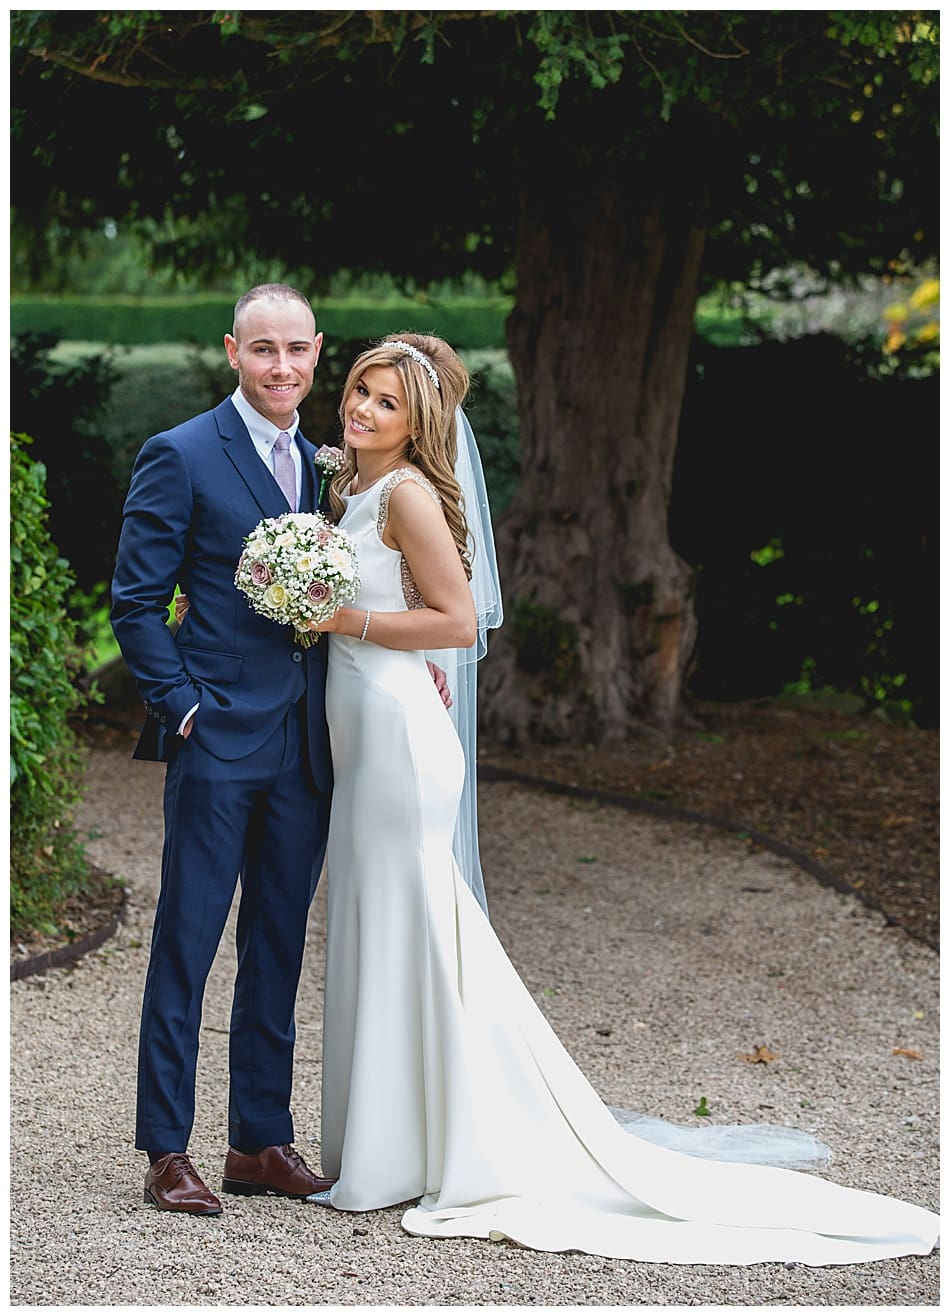 Bride and Groom in the gardens at their elegant Alrewas Hayes wedding